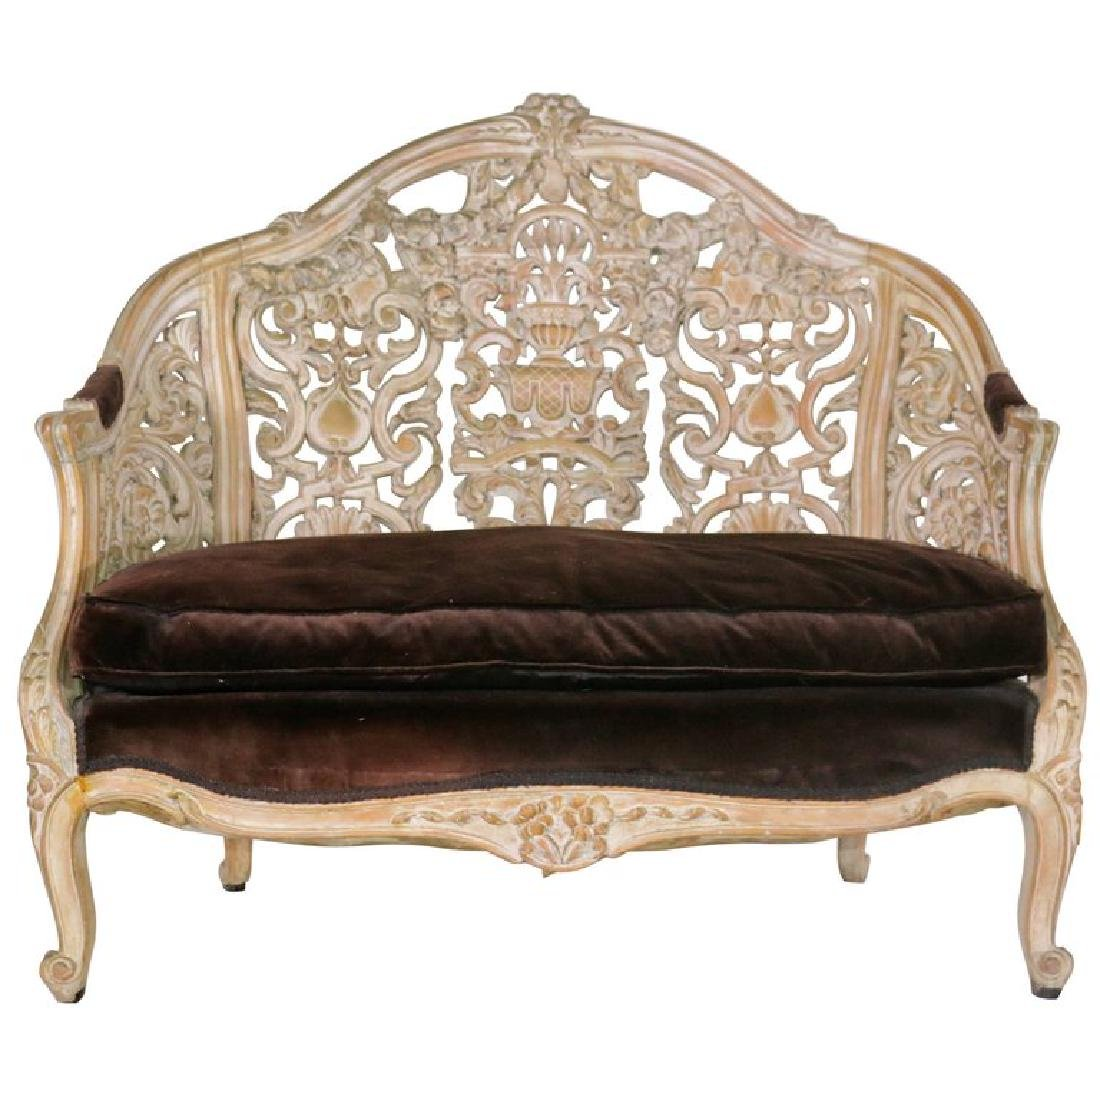 19th Century Italian Heavily Hand Carved Baroque Settee